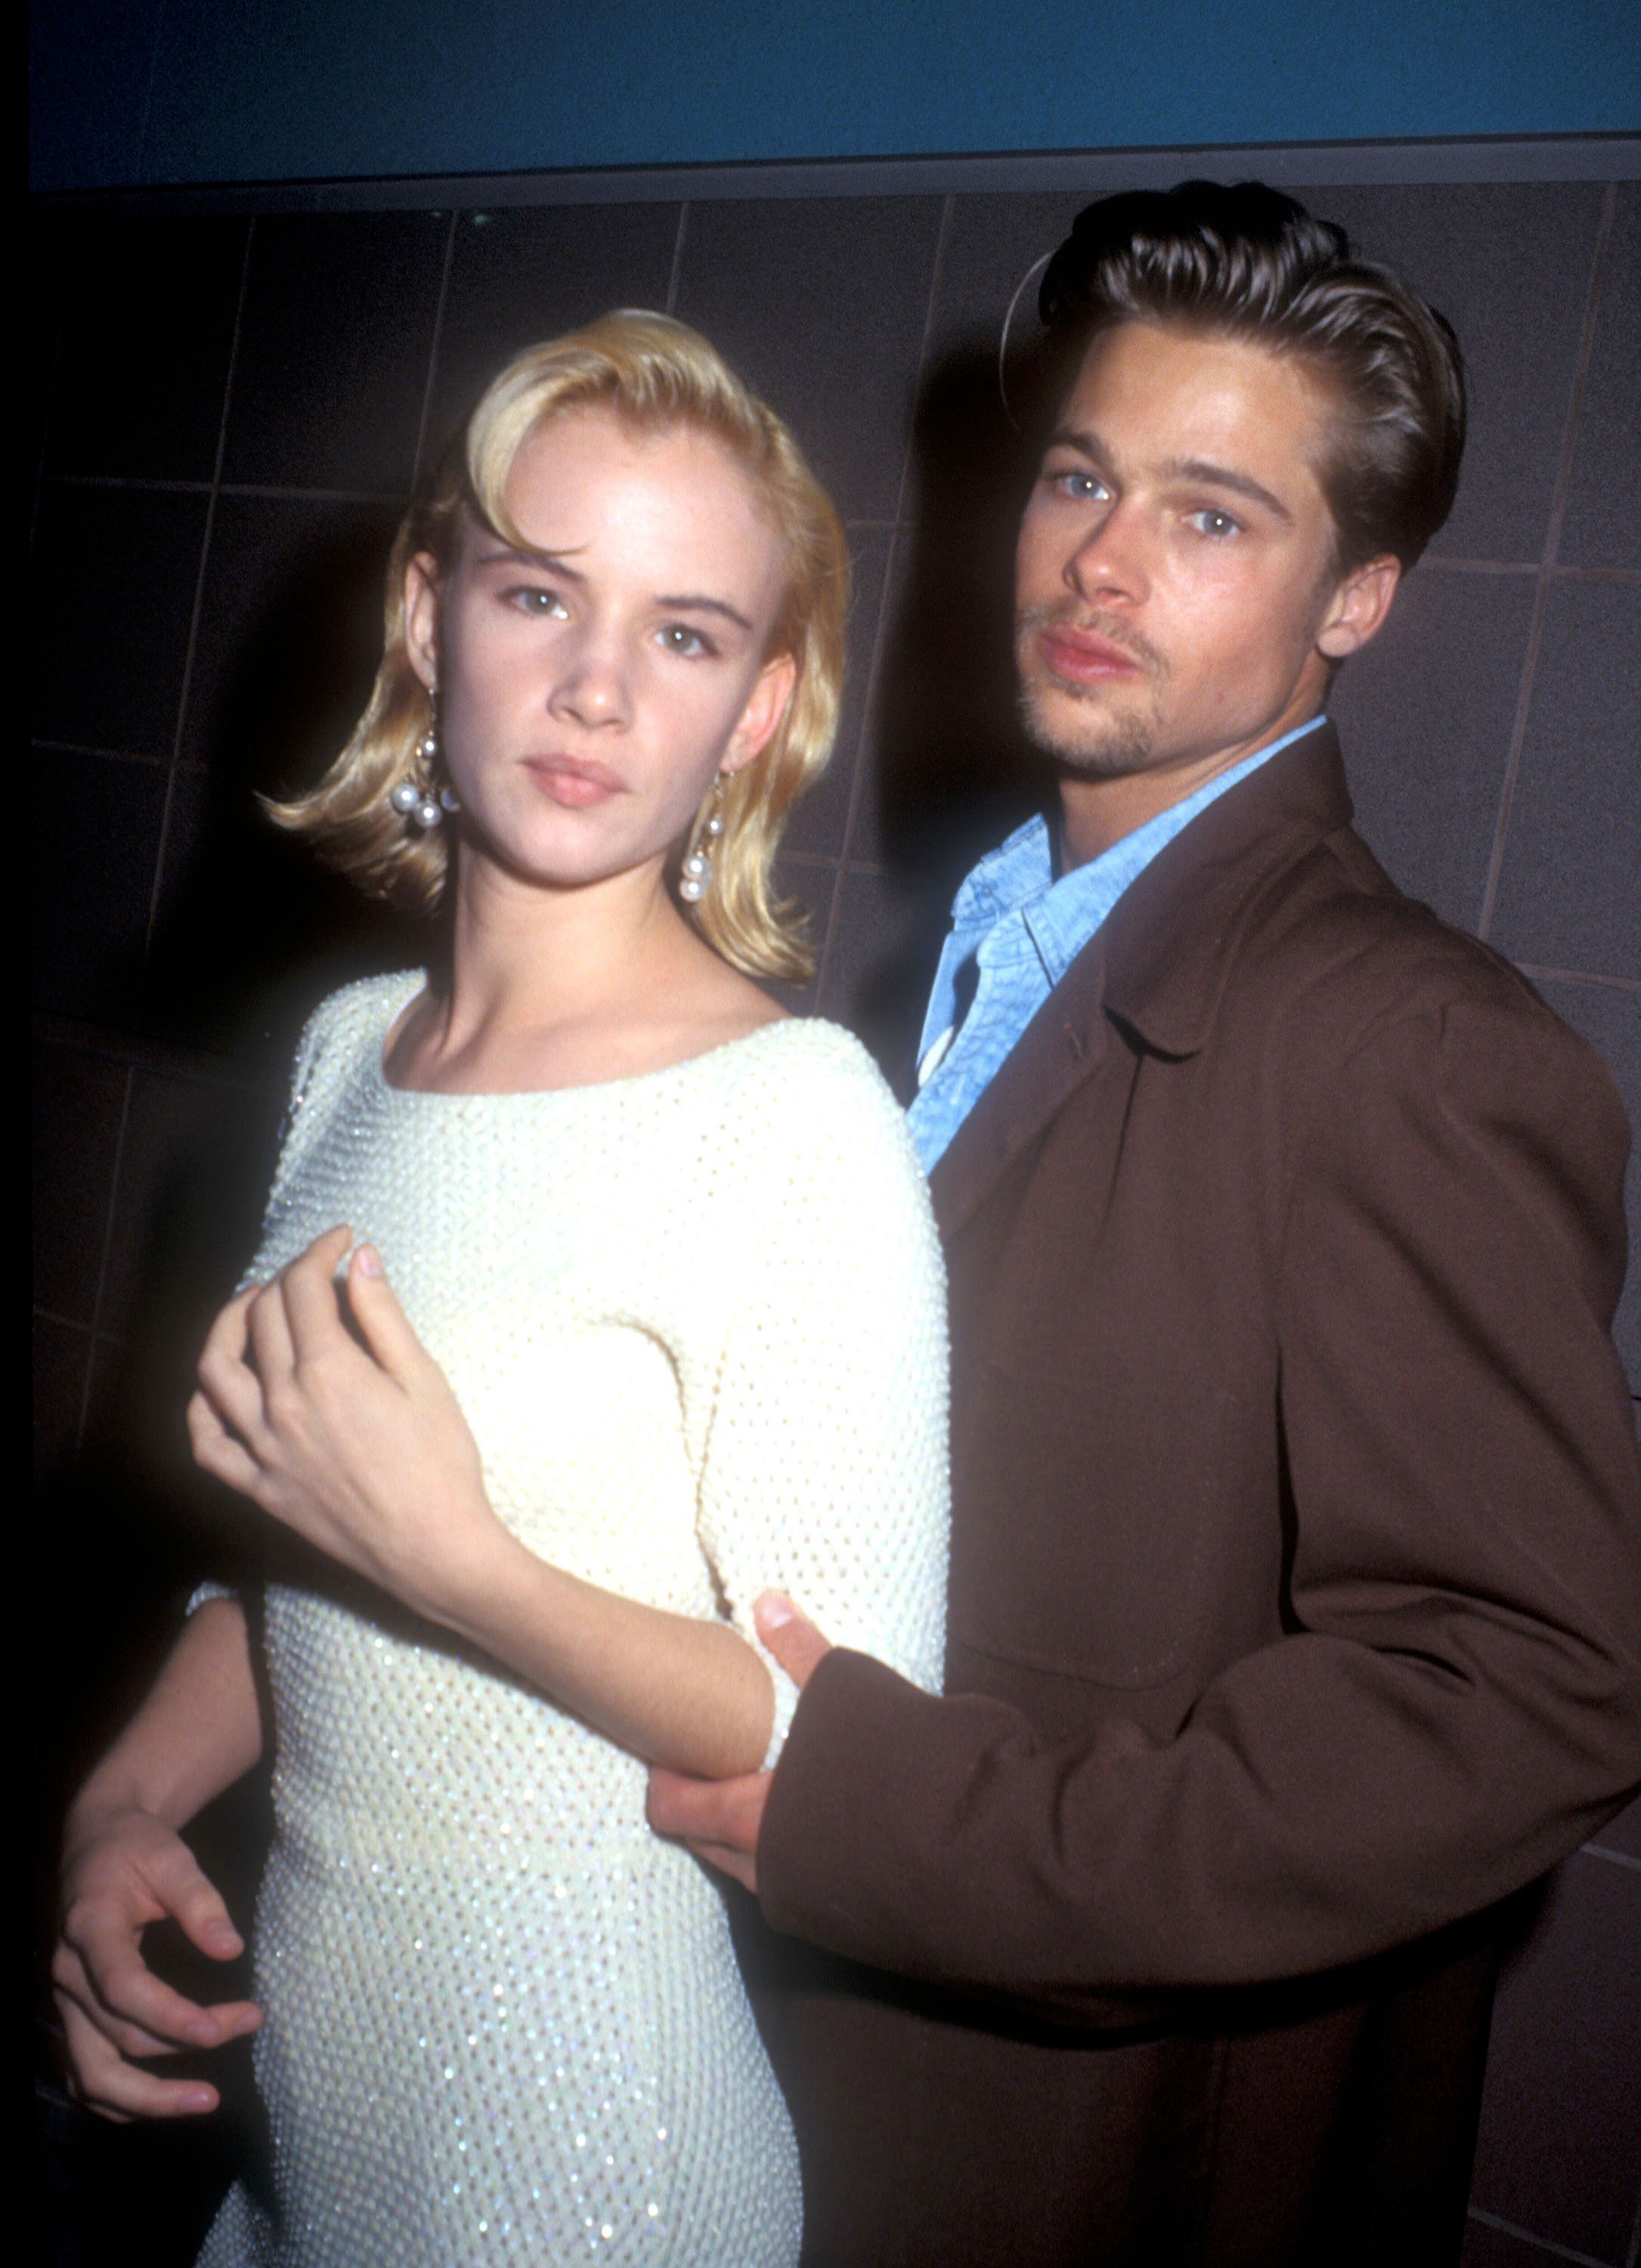 1991 File Photo of Juliette Lewis & Brad Pitt at the premiere of 'Thelma & Louise' in Los Angeles on May 10, 1991 in Los Angeles, California (Photo by Barry King/WireImage)